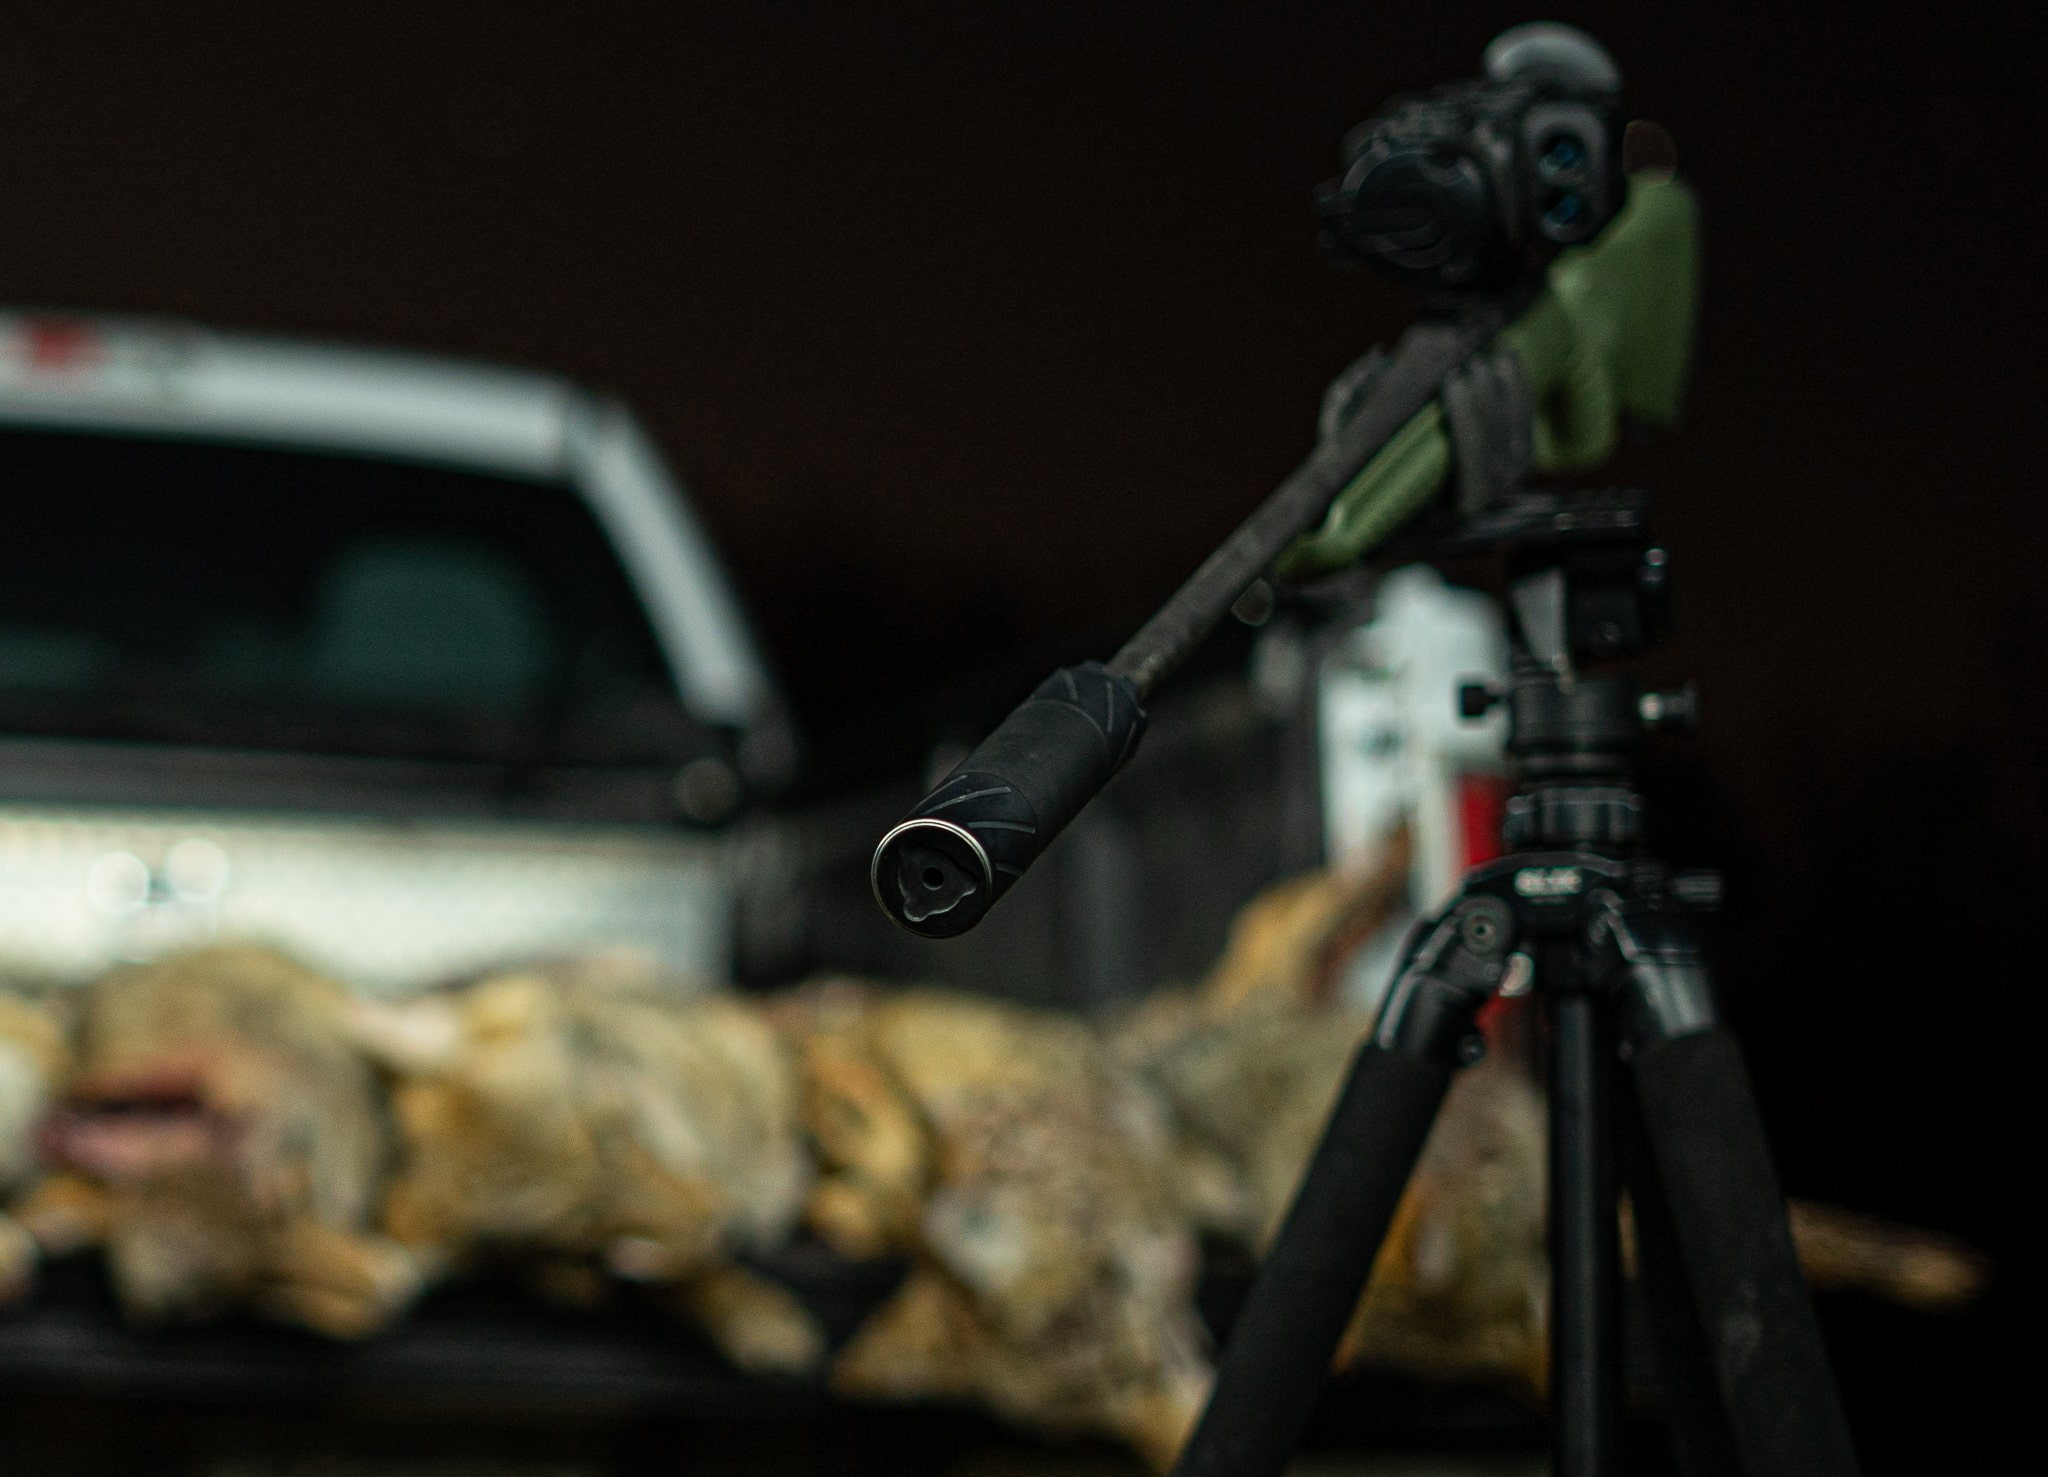 A Practical Guide to Hunting with Suppressors